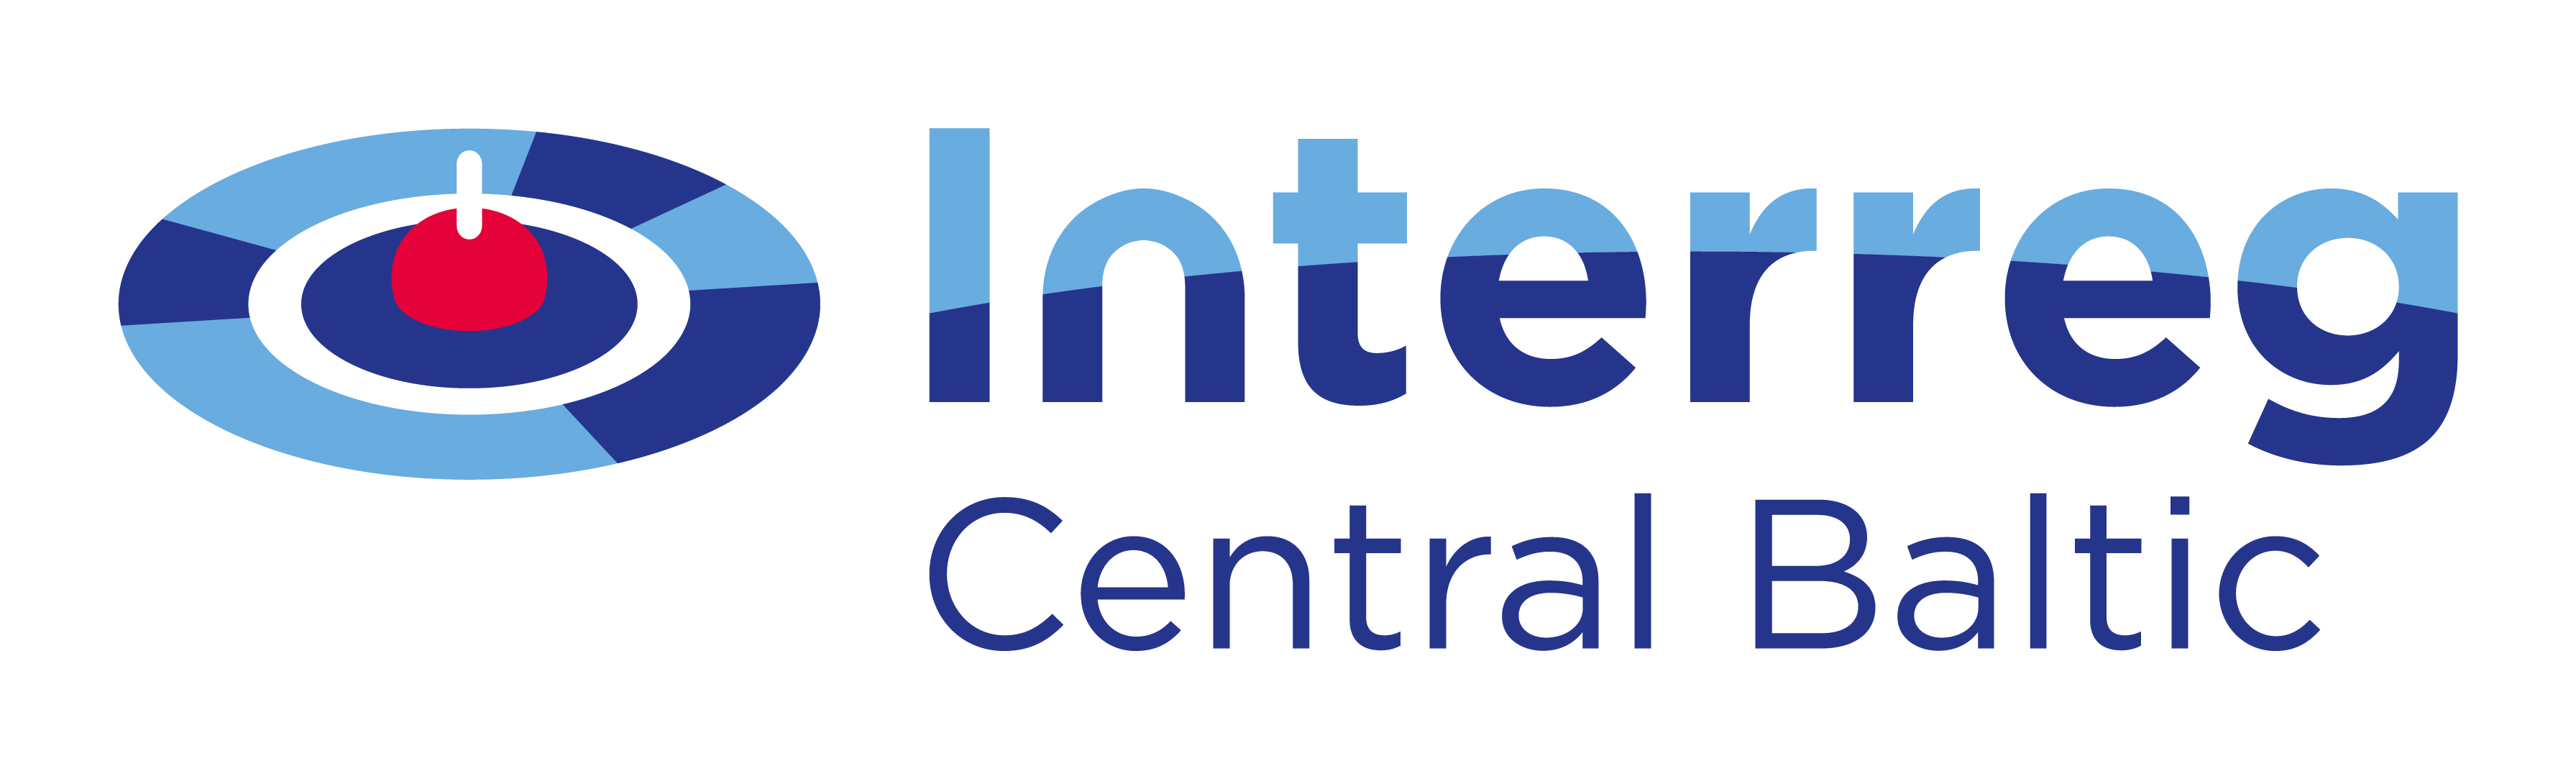 Central Baltic logo RGB